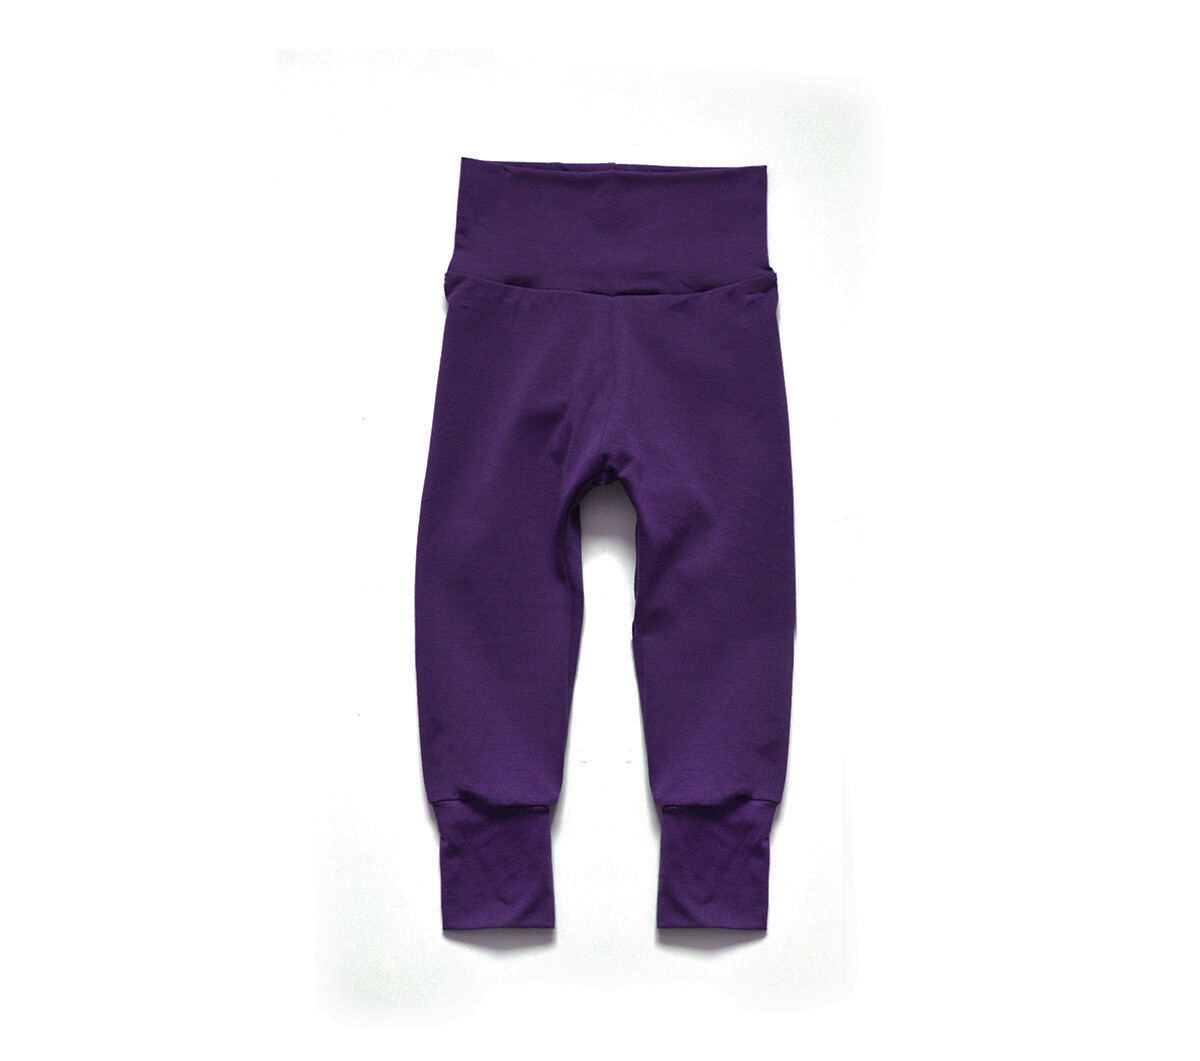 Little Sprout Pants™ in Plum | Grow With Me Leggings - Bamboo